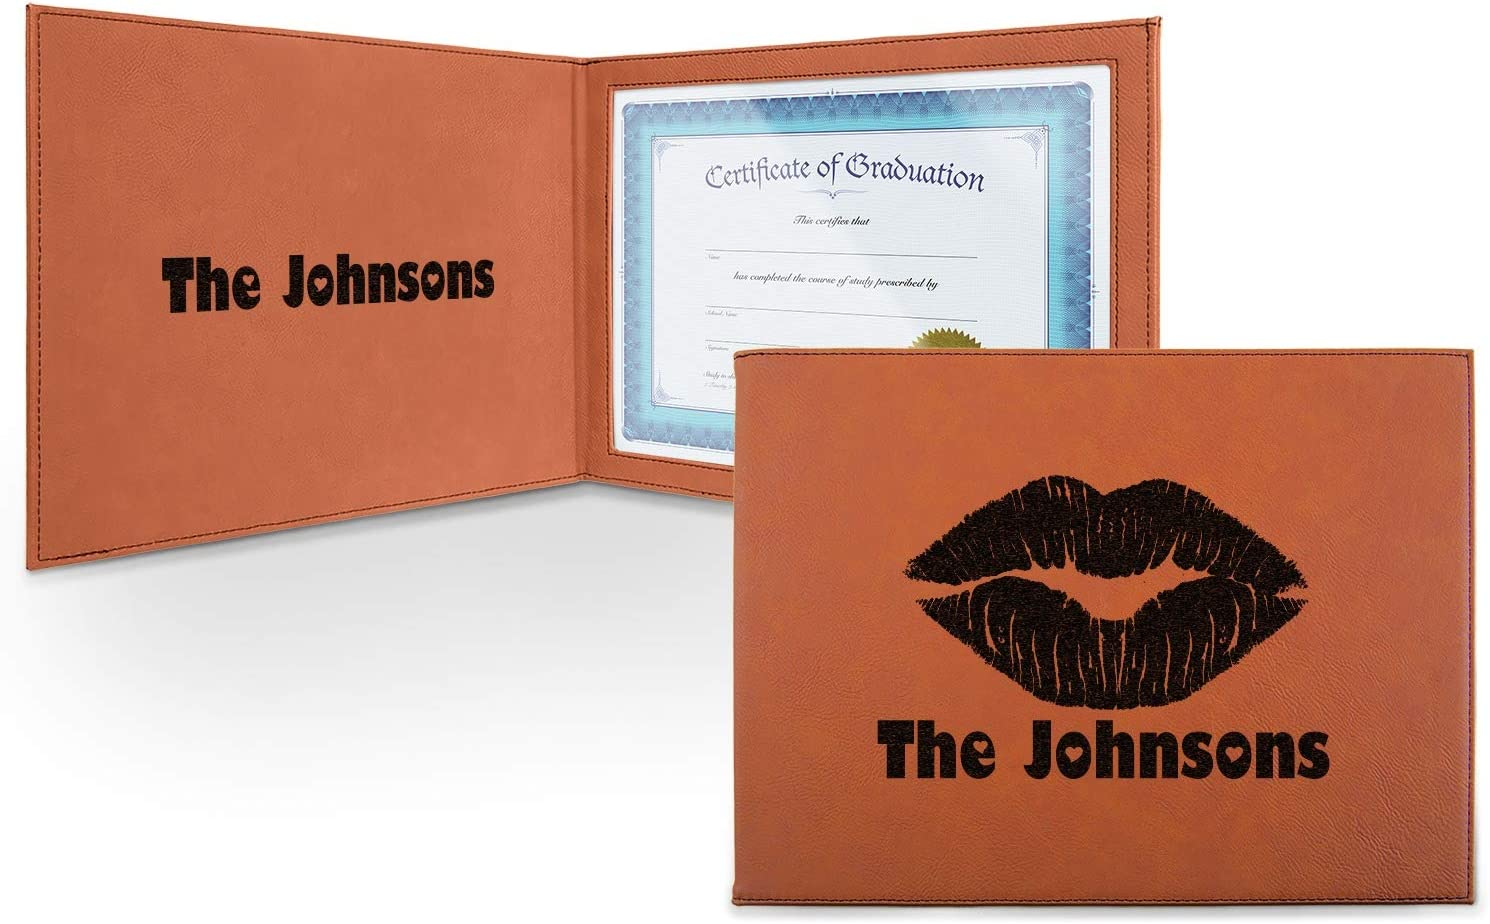 Lips n Long Beach sold out Mall Hearts Leatherette Certificate Inside - and Holder Front